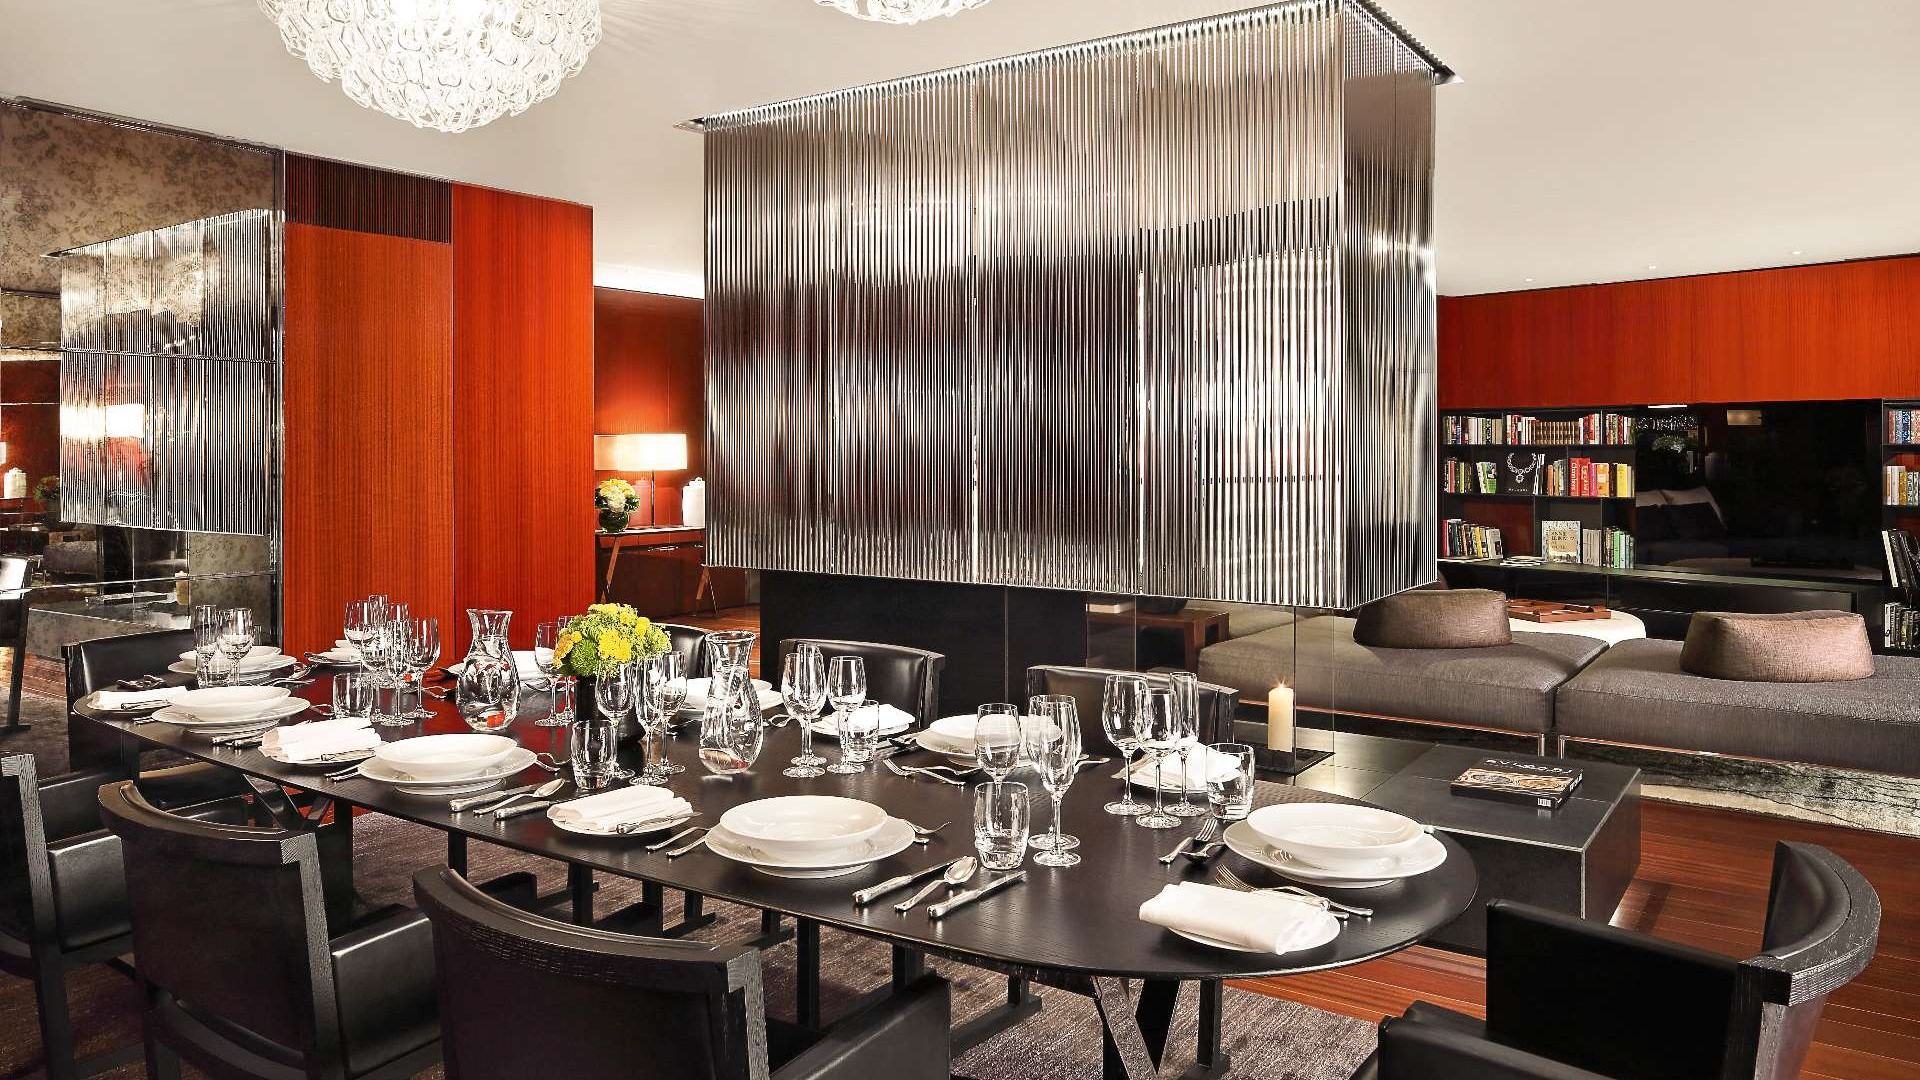 Bulgari Hotel, Bulgari Suites – London's best designer hotel suites